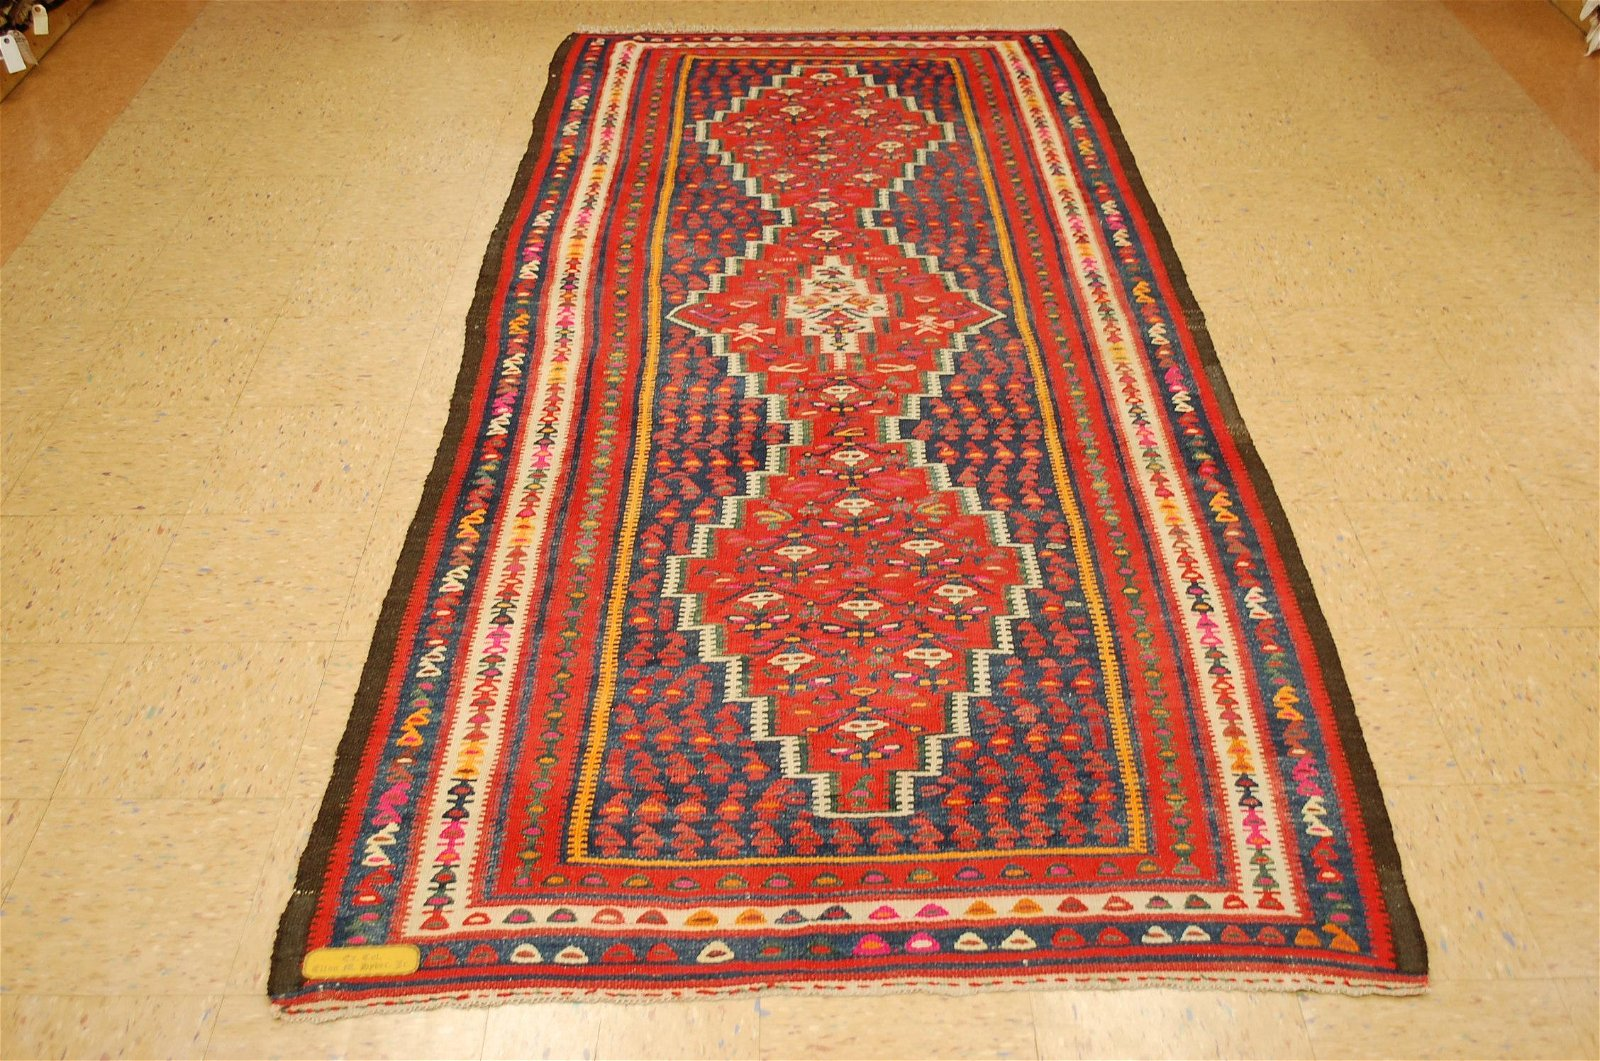 Circa 1910s ANTIQUE CAUCASIAN KILIM 4.6x9.7 ESTATE